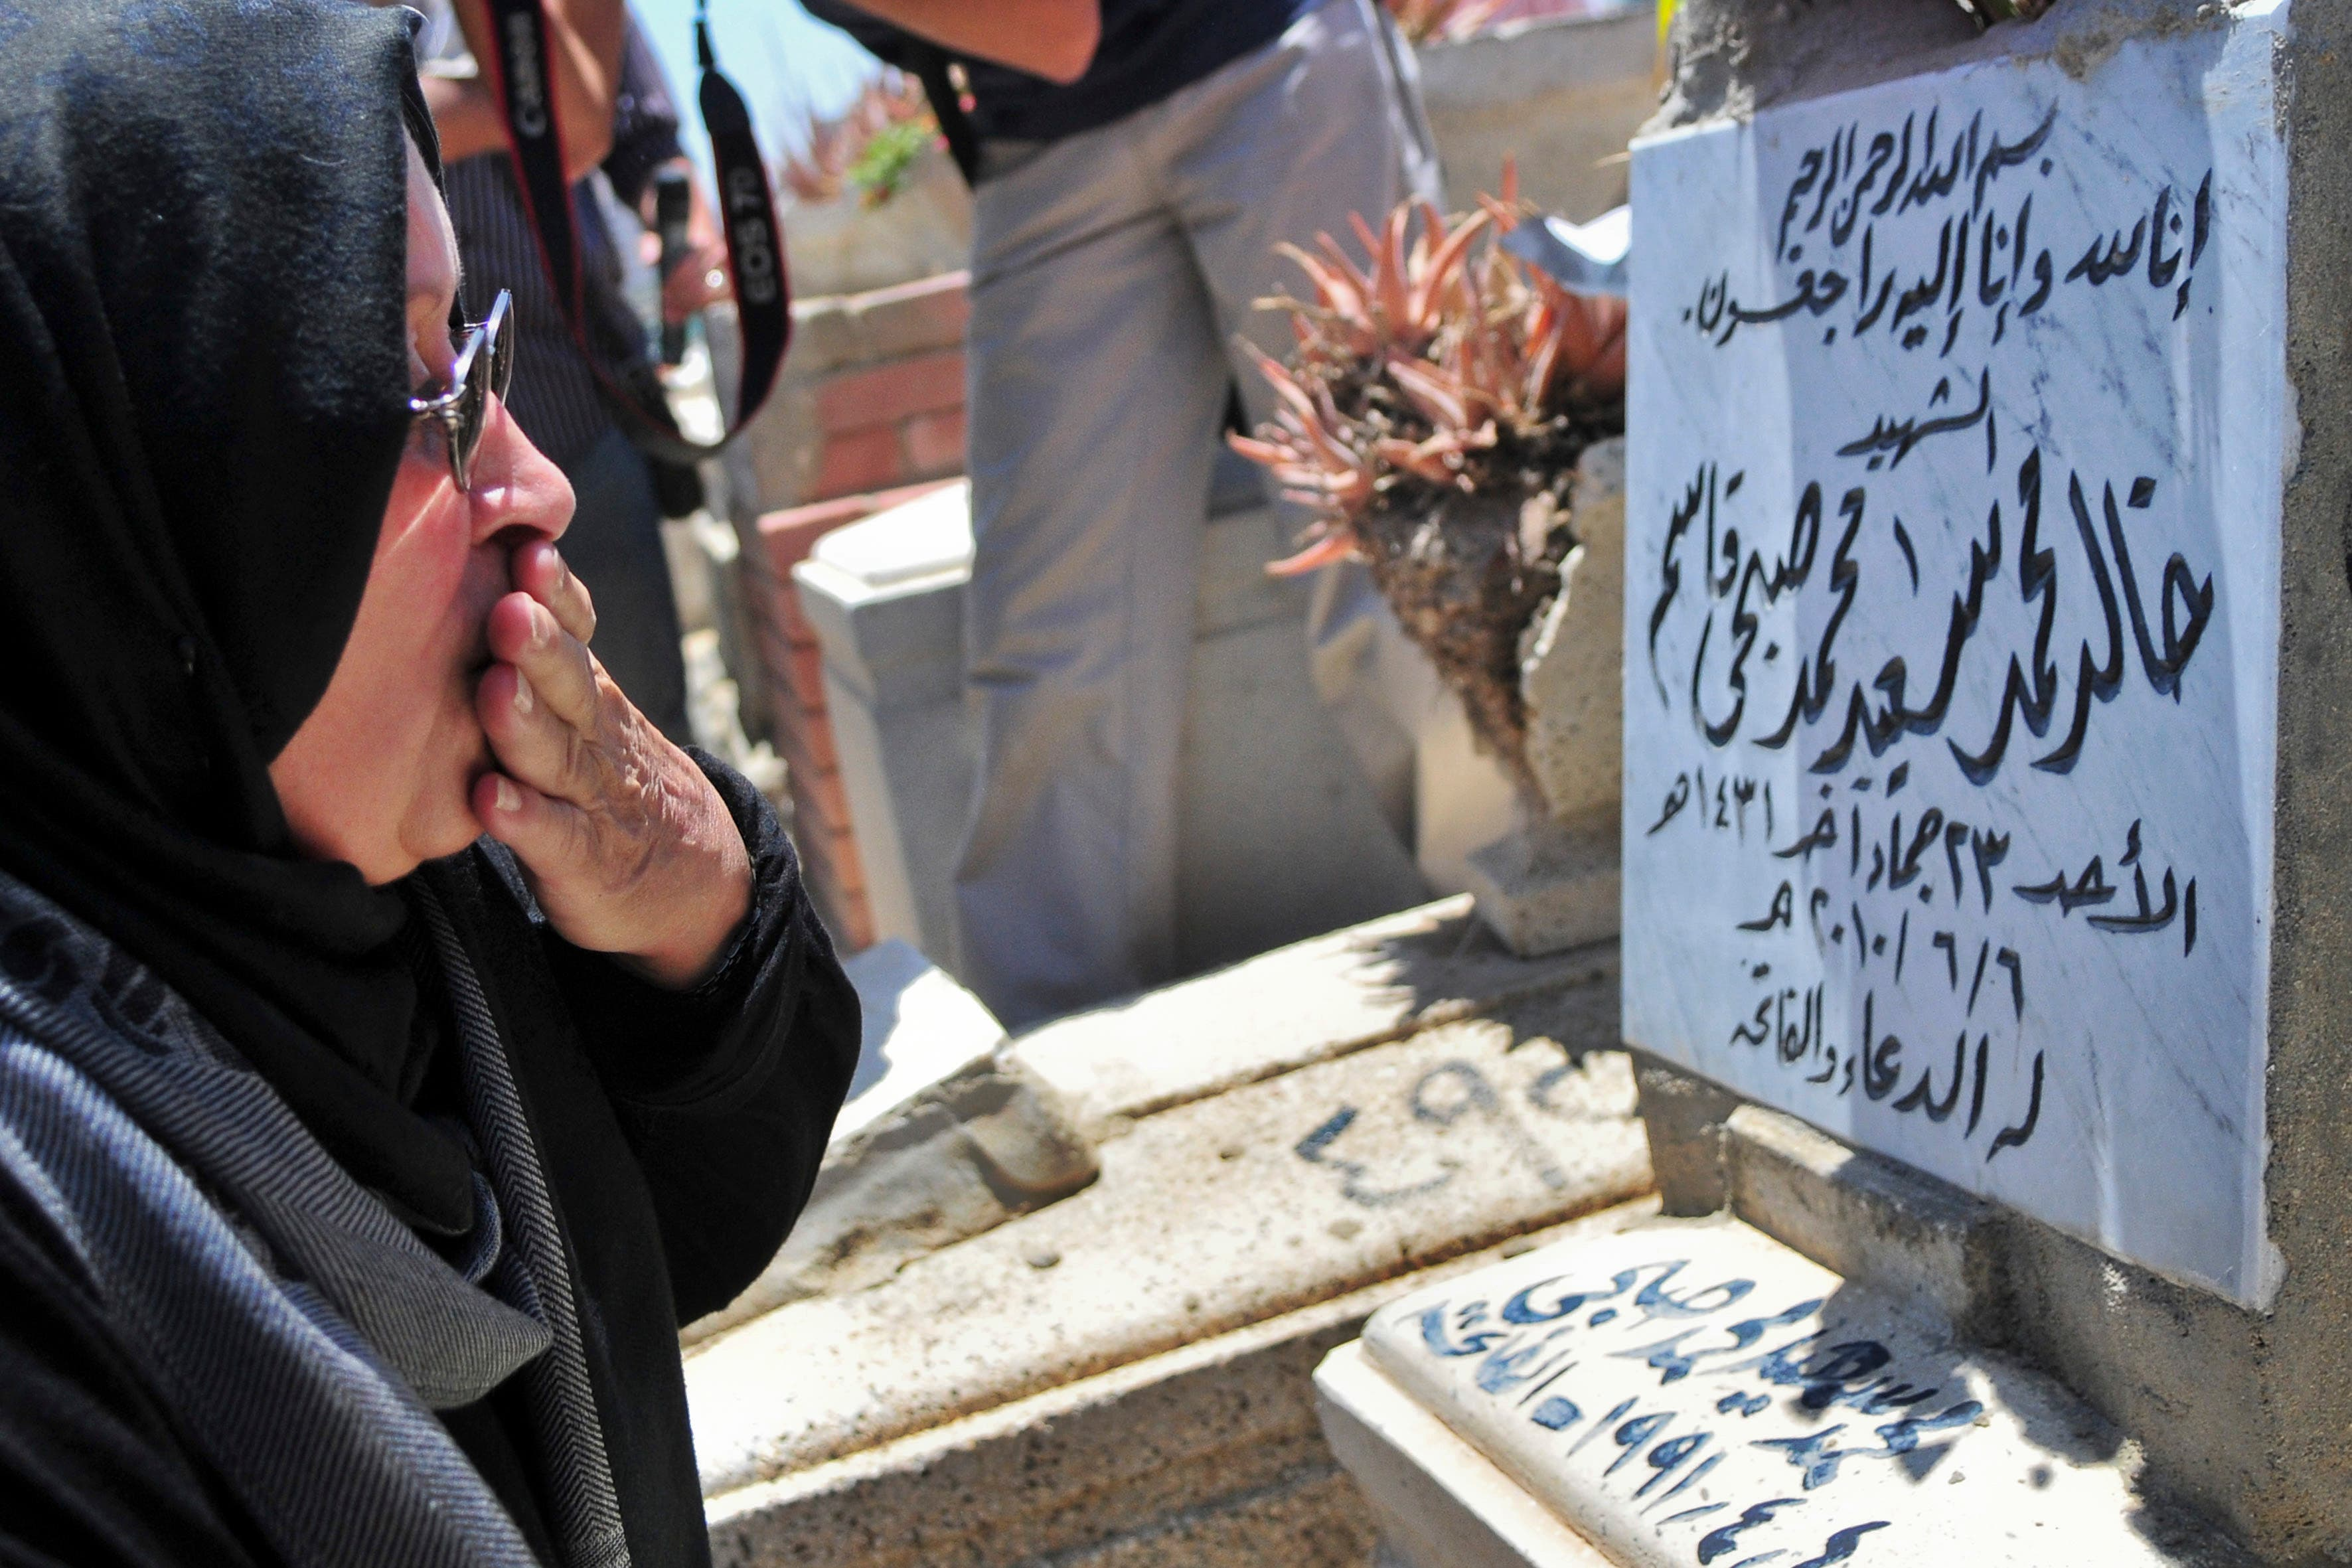 Laila Marzouq, the mother of Khaled Said, visits his grave in Alexandria, Egypt Monday, June 6, 2011. AP